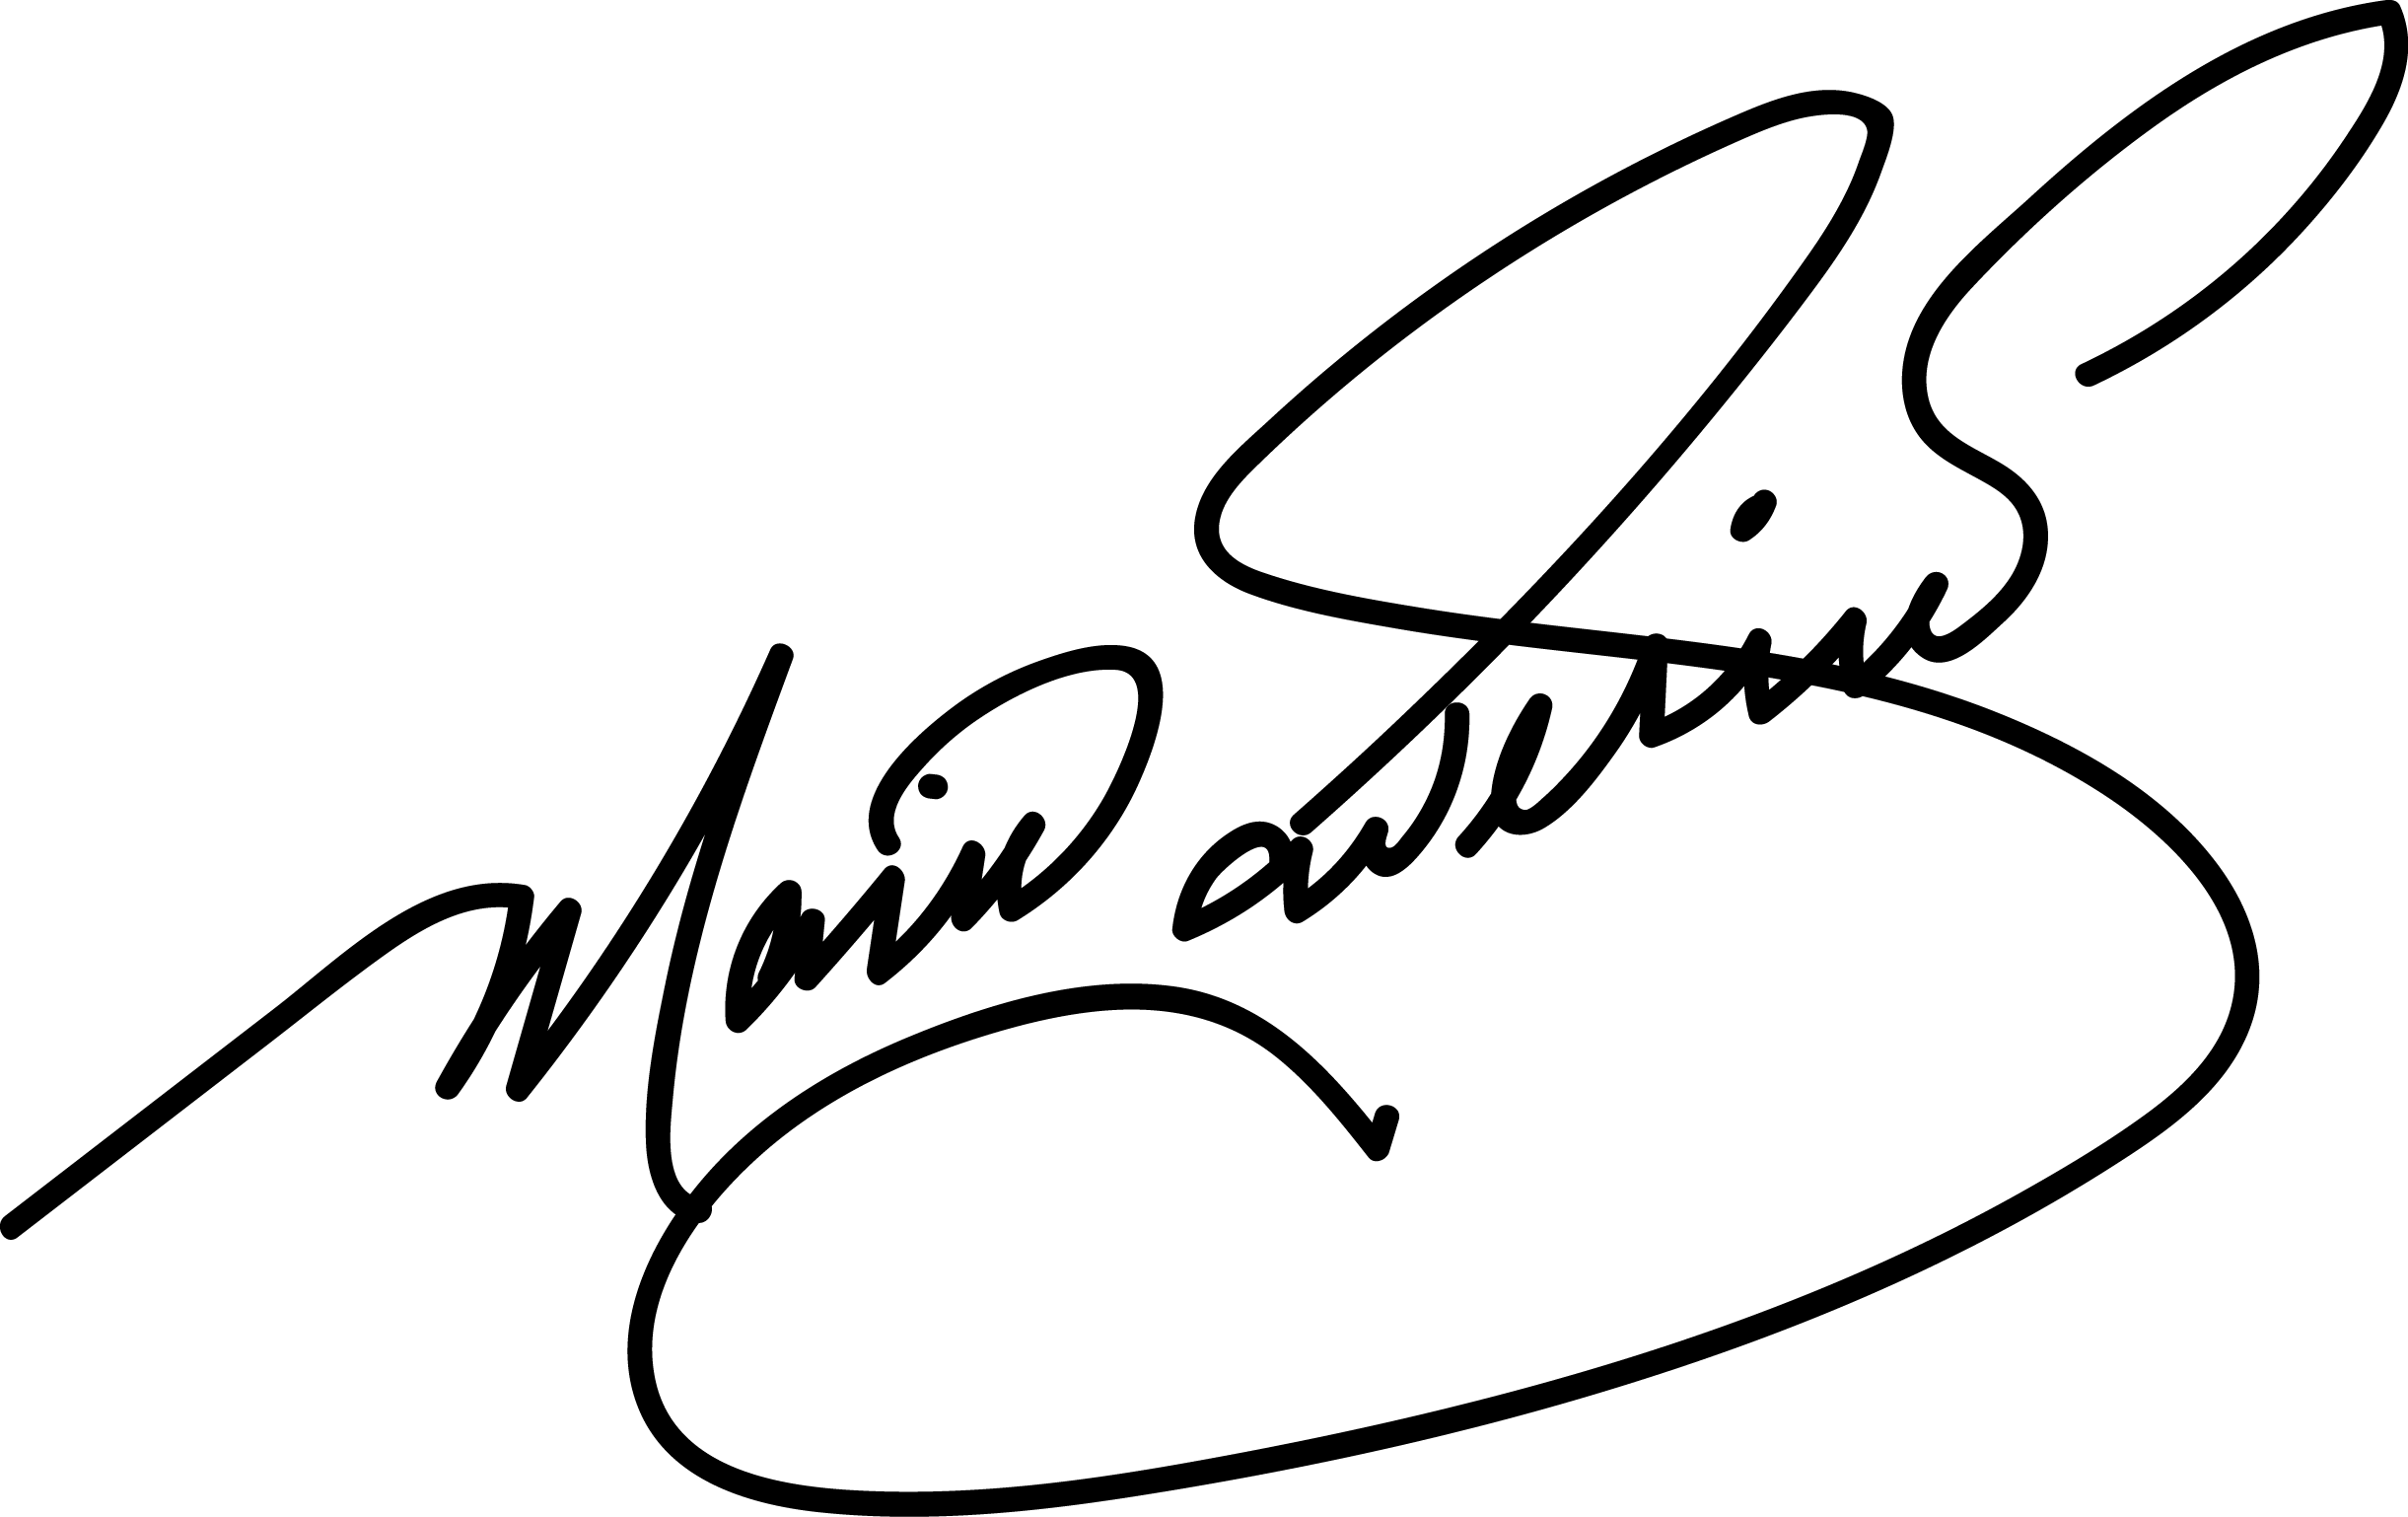 Mario saverino Signature